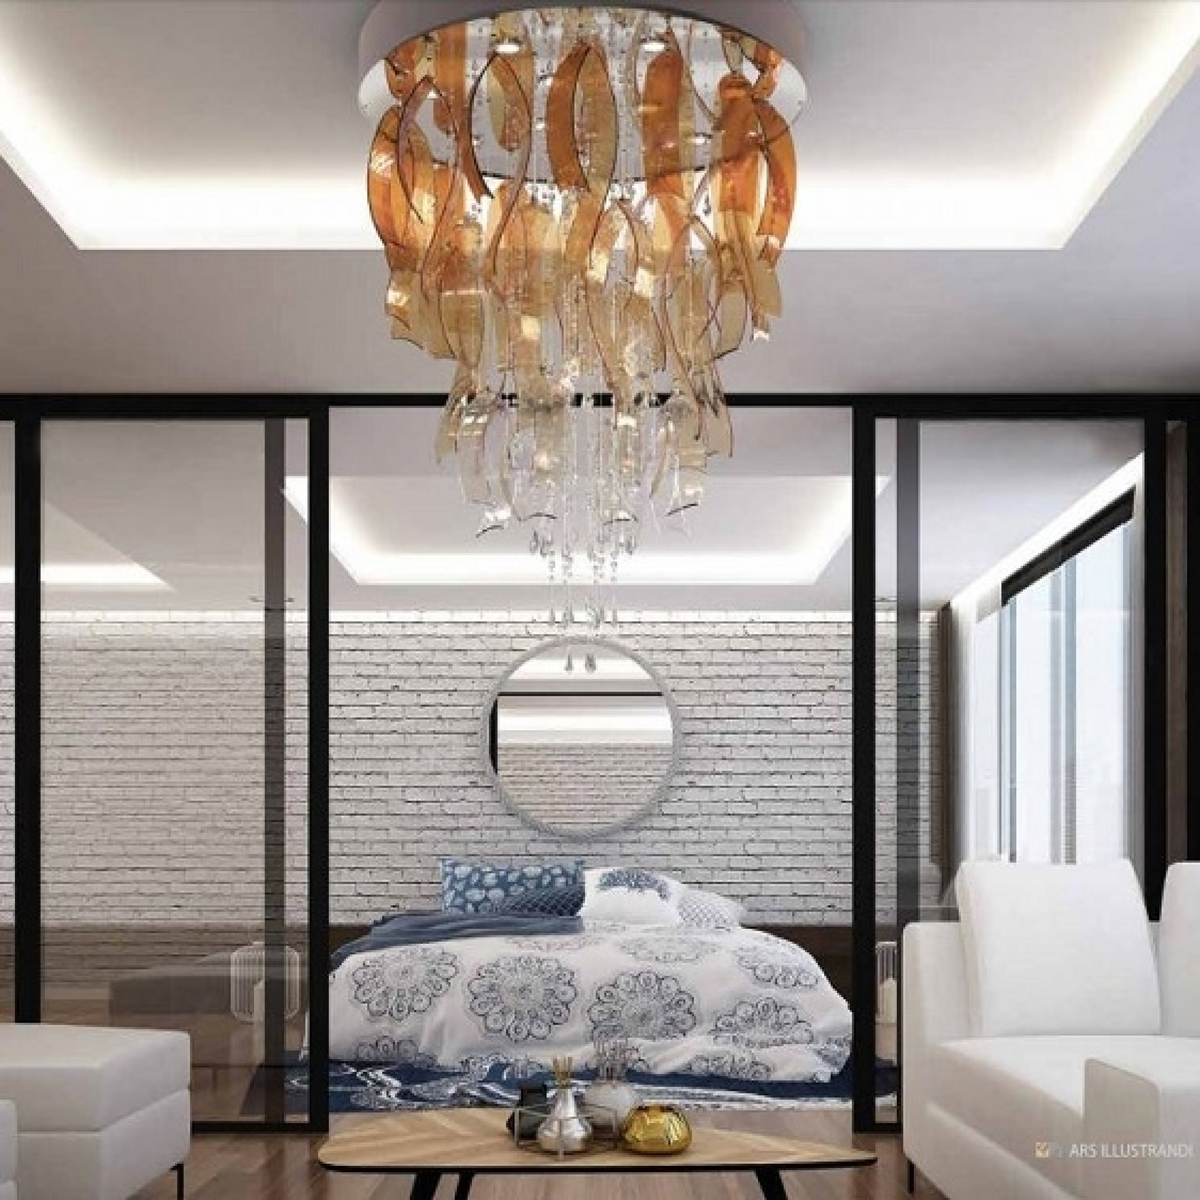 Lighting Fixture ICEFALL 01 – I